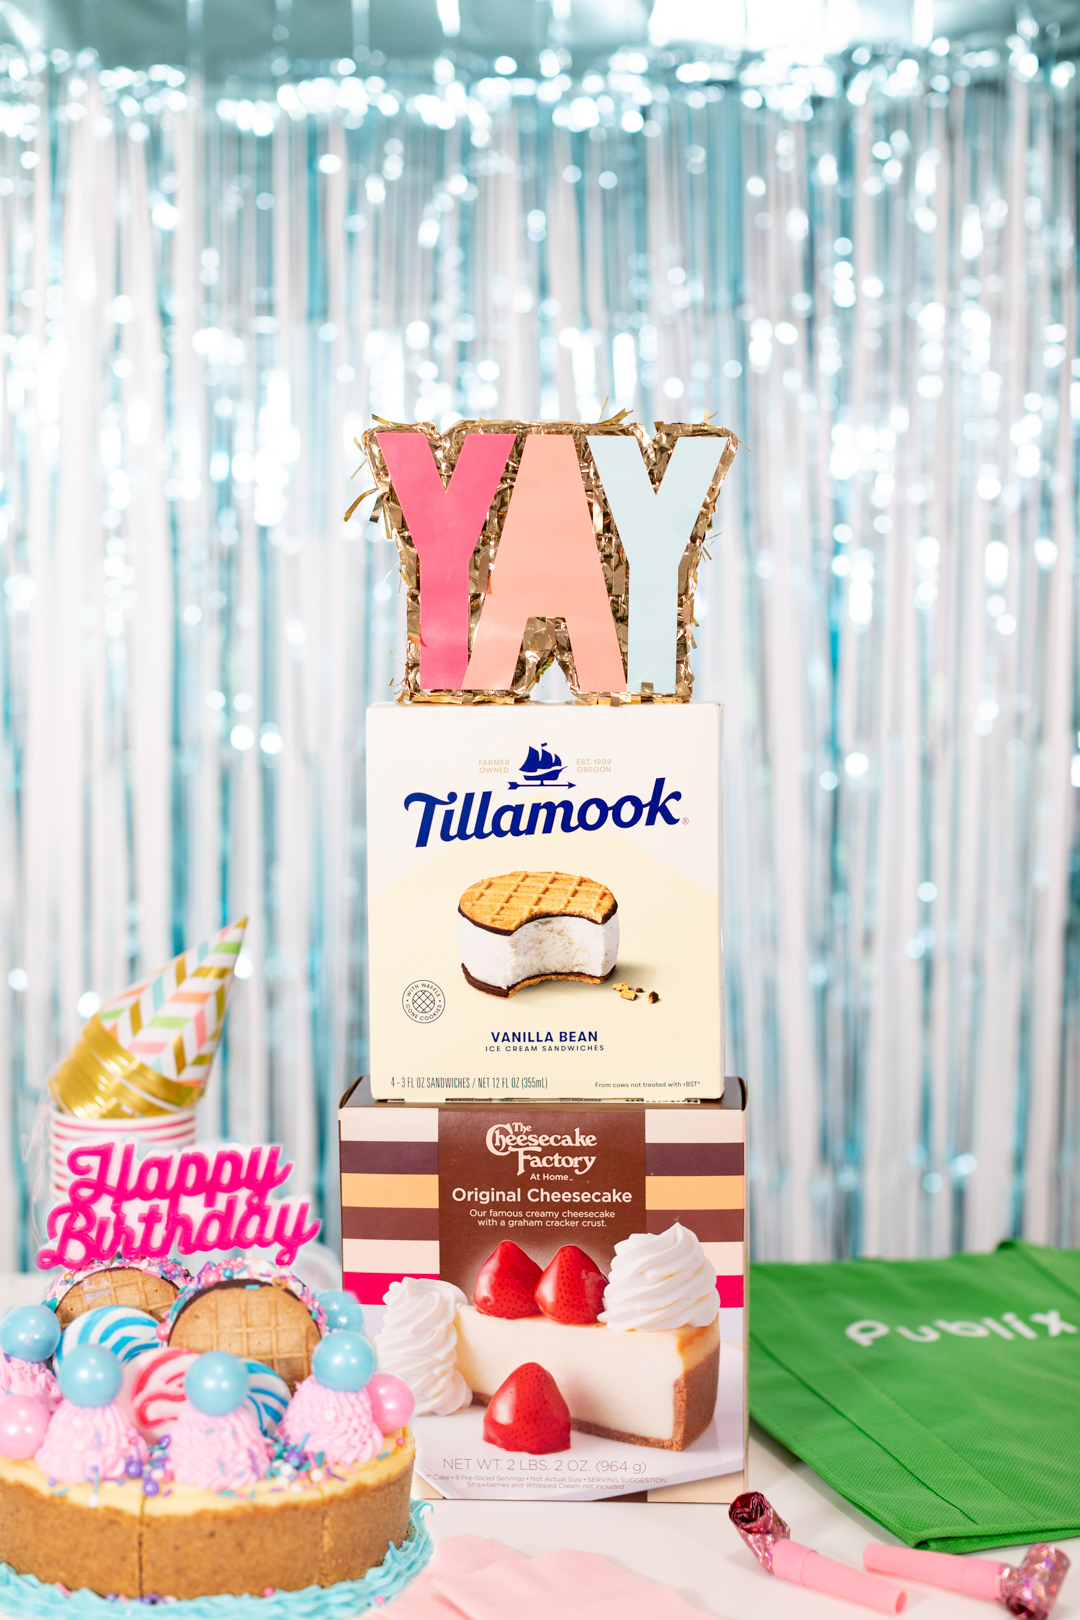 Tillamook ice cream sandwiches and cheesecake factory cheesecake and party supplies